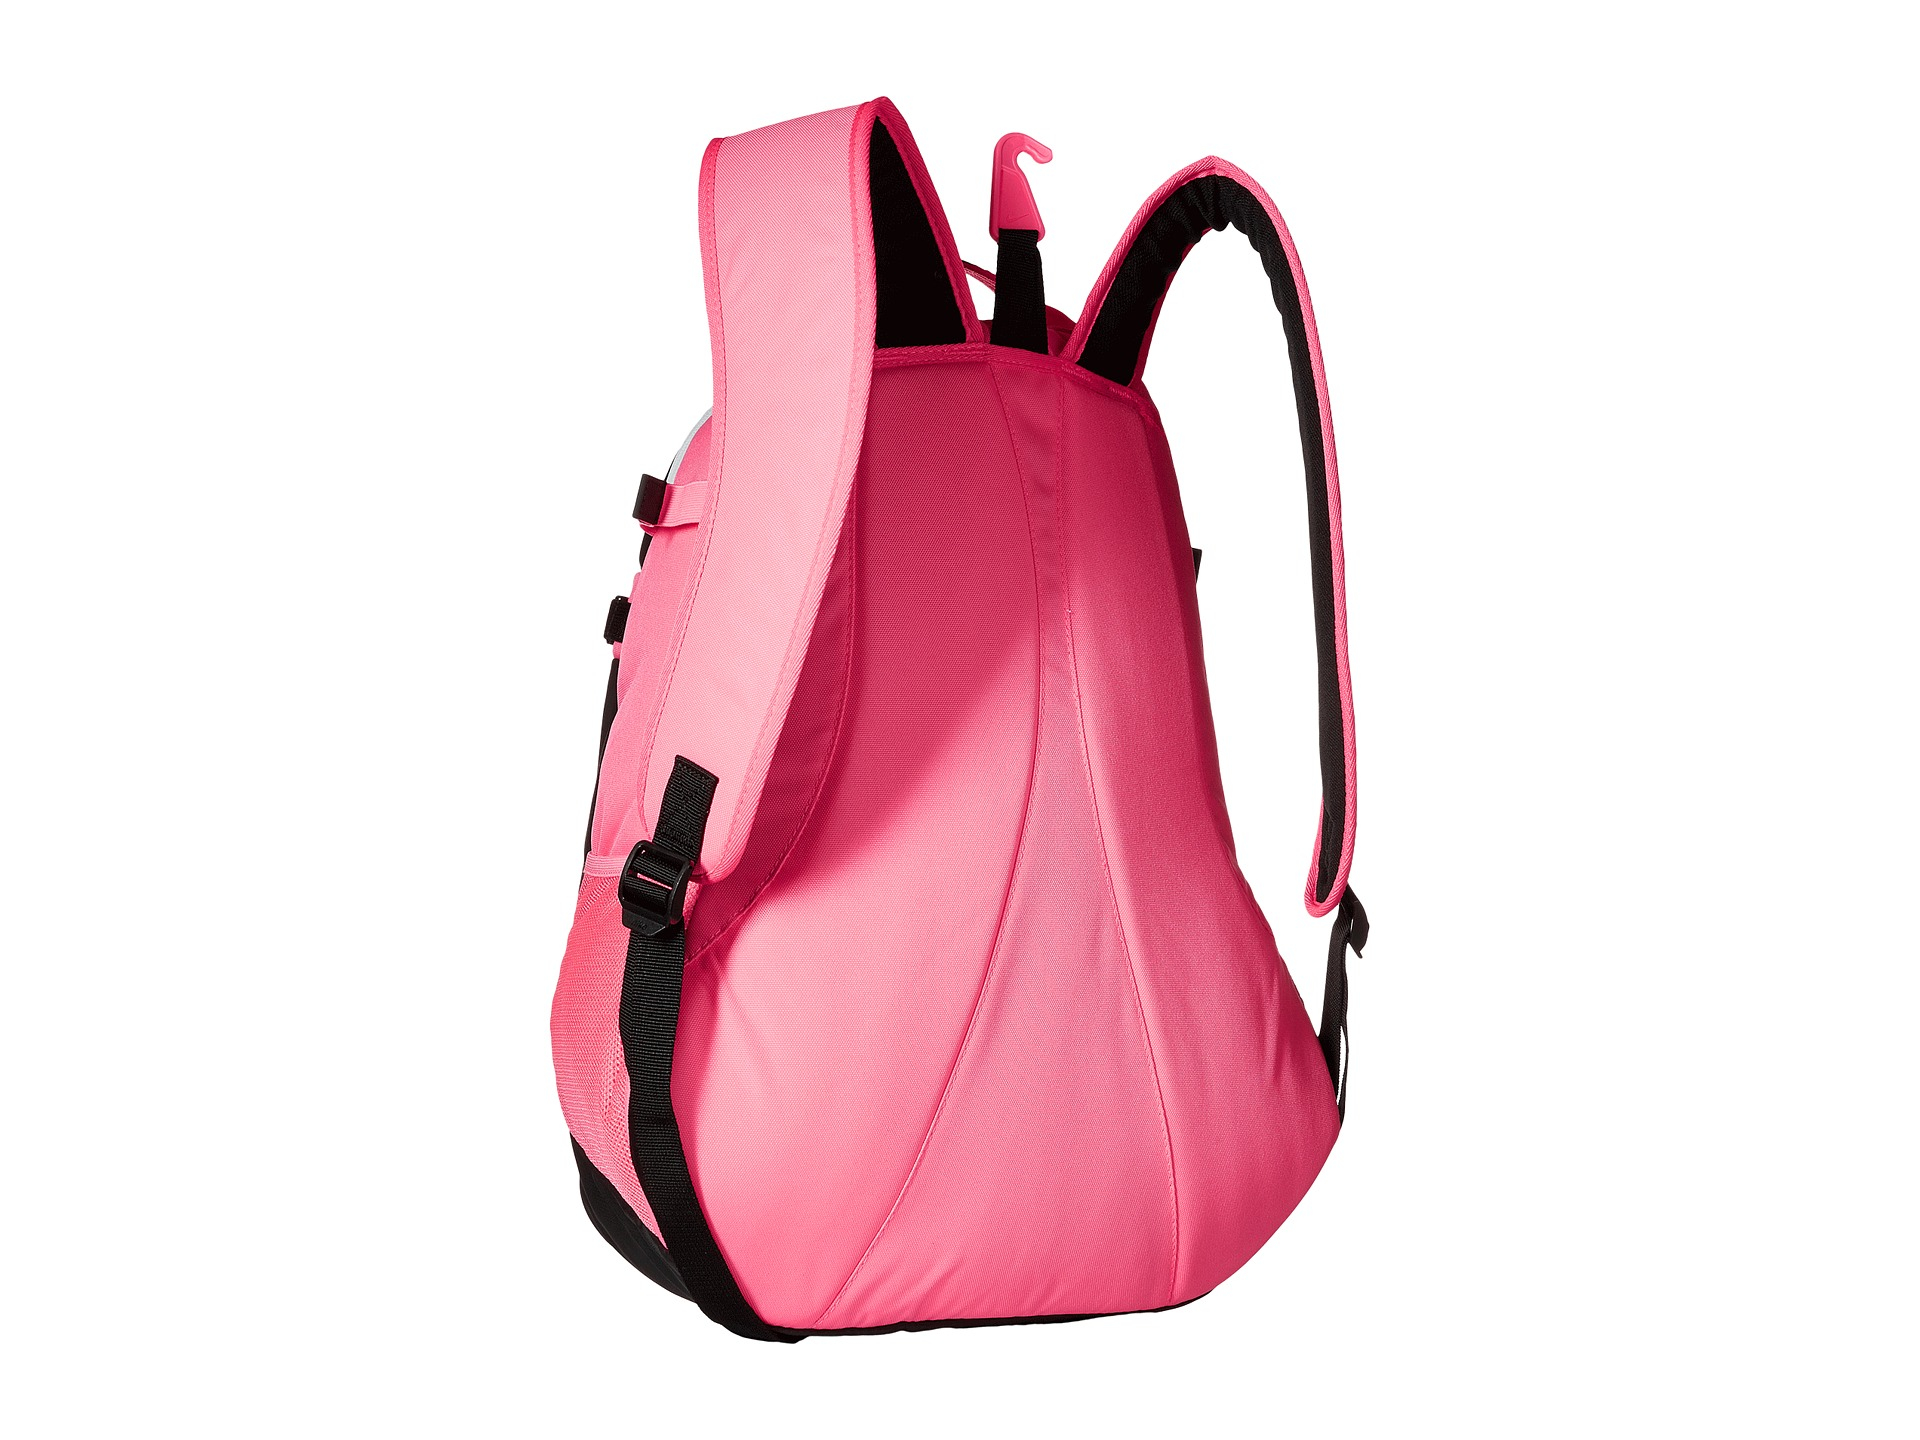 6c2afc9906 Nike Vapor Select Backpack in Pink Lyst